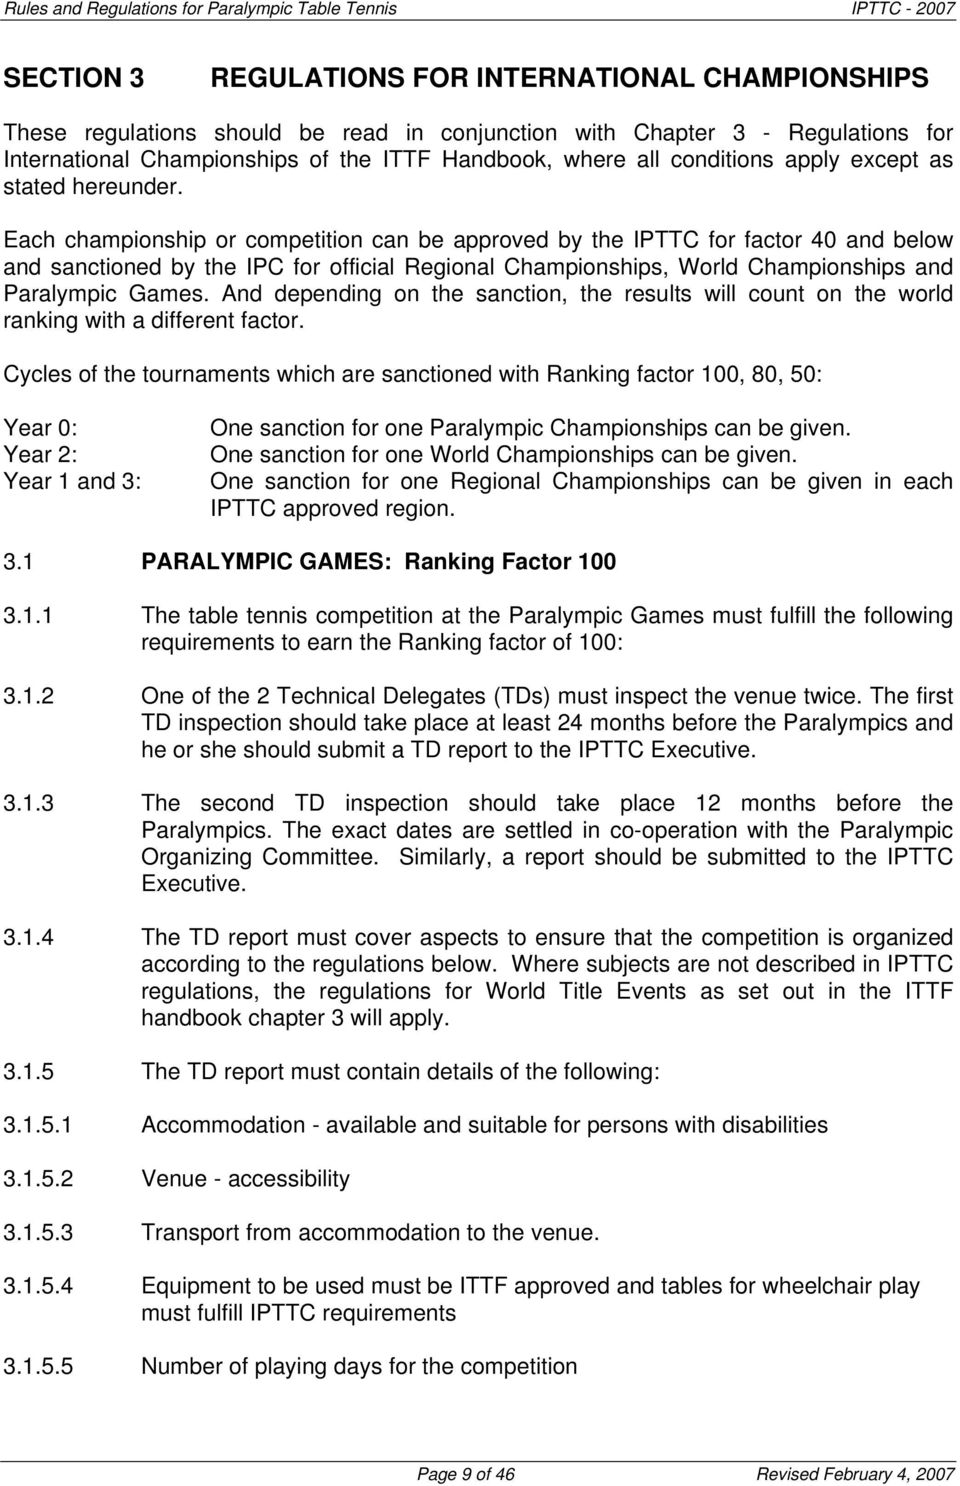 Each championship or competition can be approved by the IPTTC for factor 40 and below and sanctioned by the IPC for official Regional Championships, World Championships and Paralympic Games.